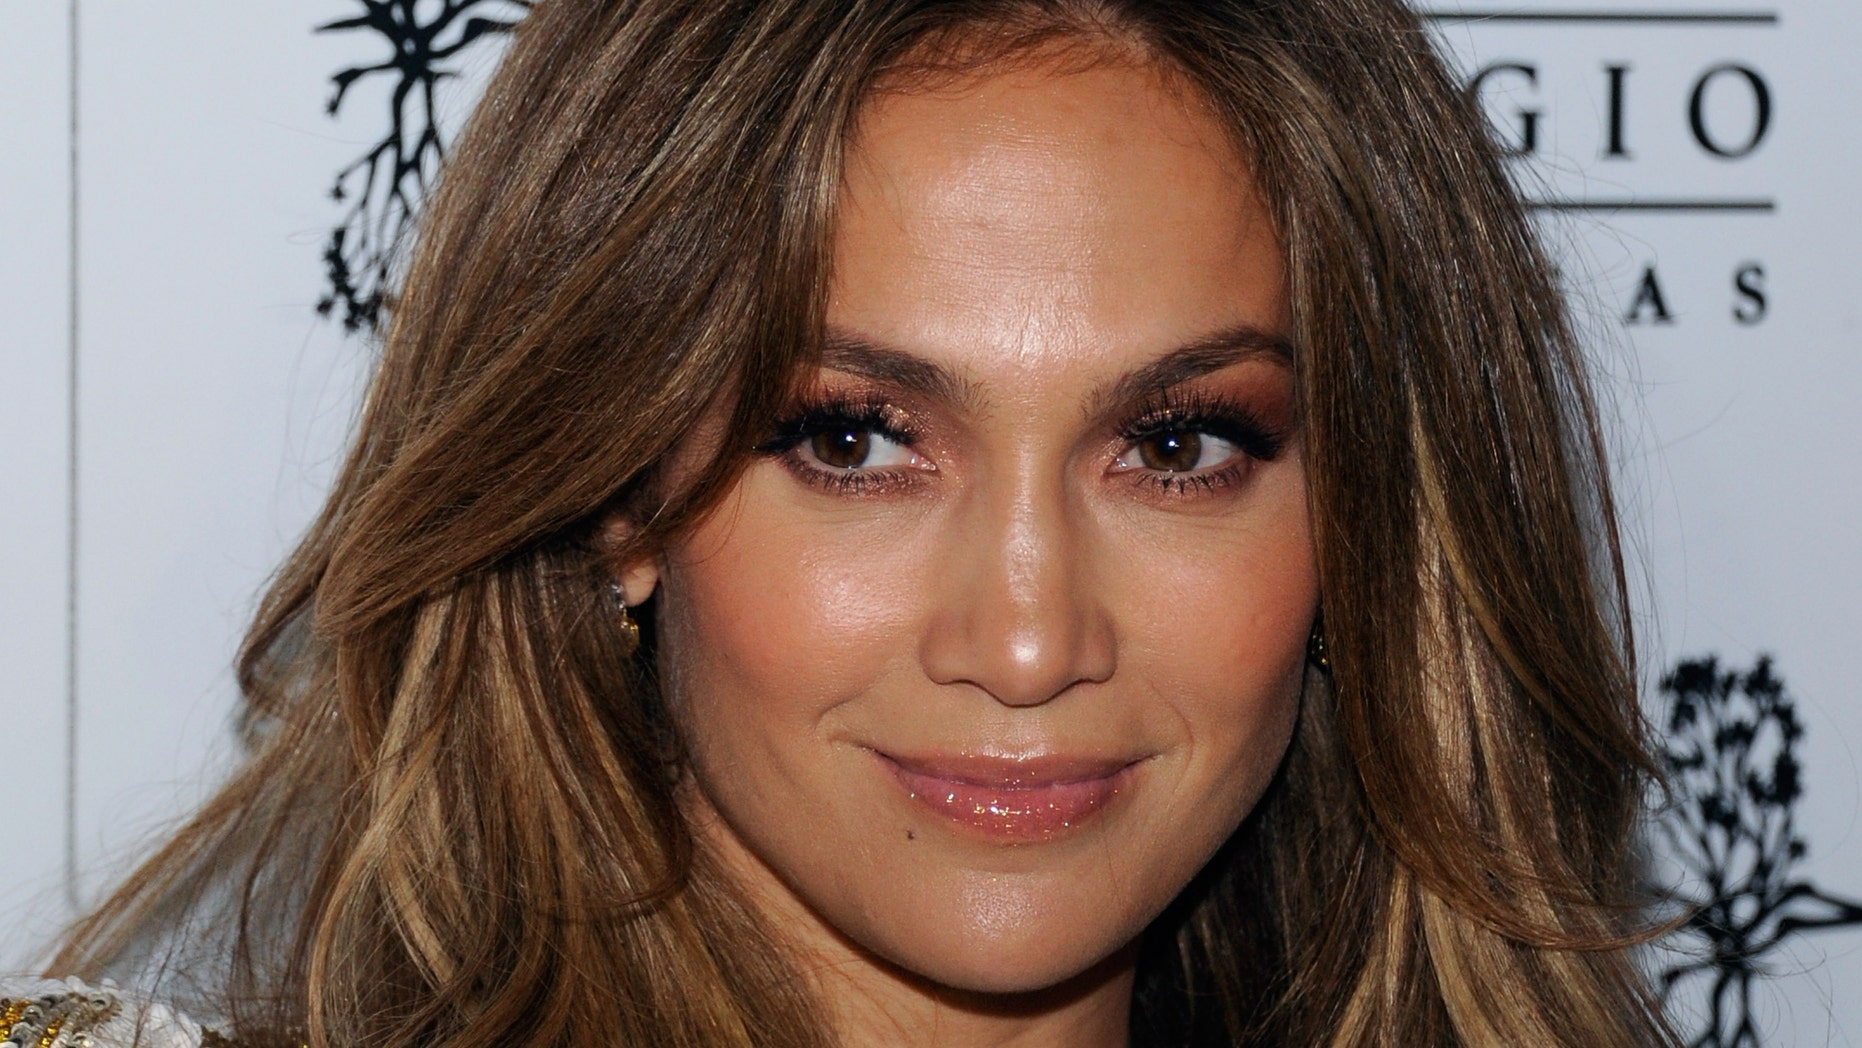 """LAS VEGAS, NV - MAY 27:  Singer/actress Jennifer Lopez arrives at Hyde Bellagio at the Bellagio to celebrate the launch of her new single, """"Goin' In"""" May 27, 2012 in Las Vegas, Nevada.  (Photo by Ethan Miller/Getty Images for Hyde Bellagio)"""